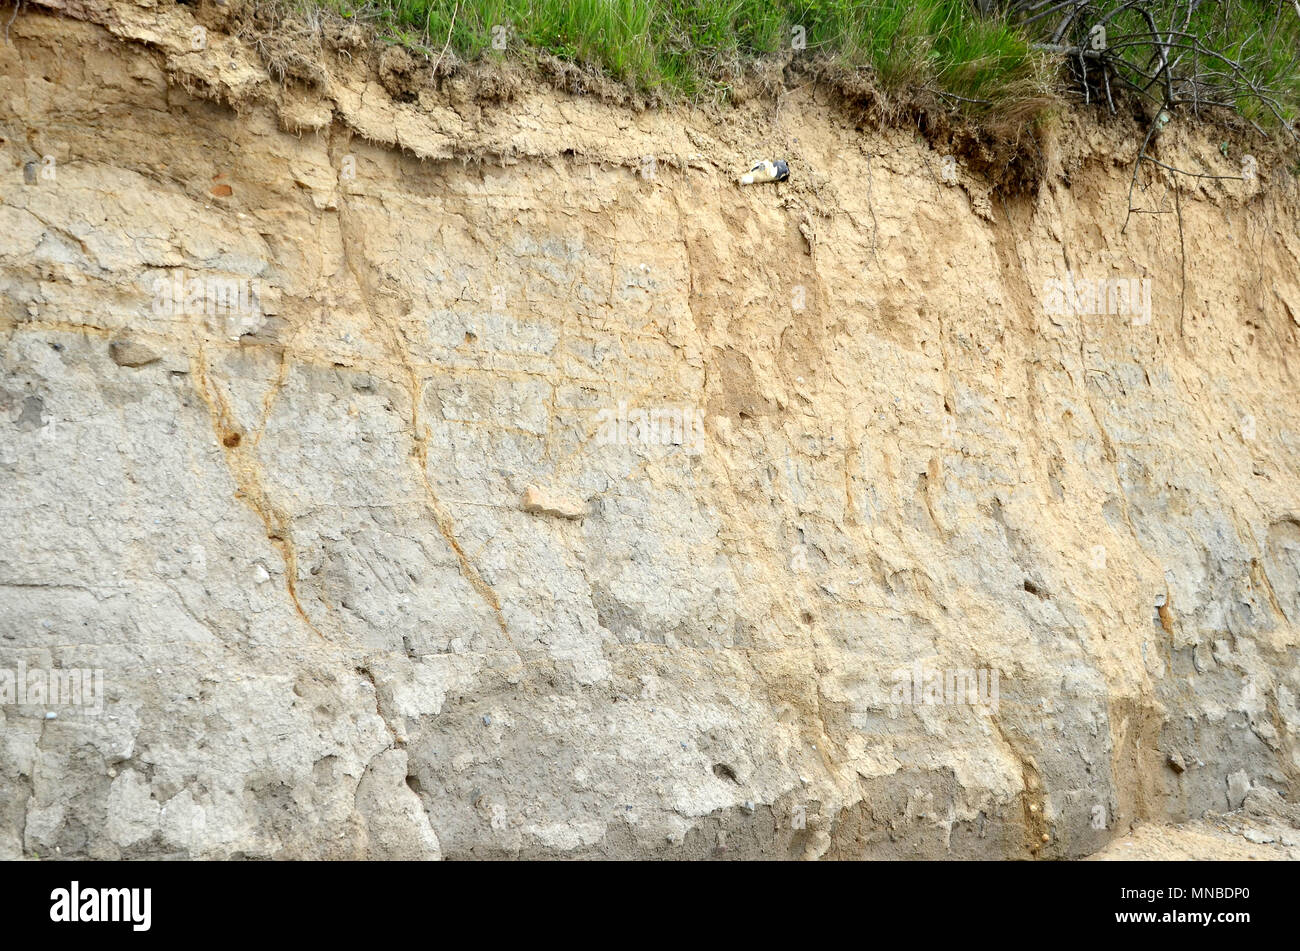 Slope with clay soil after a slide. This clay contains approx 3% iron, the yellowish areas of the slope has oxidated iron, while the dark areas have n - Stock Image